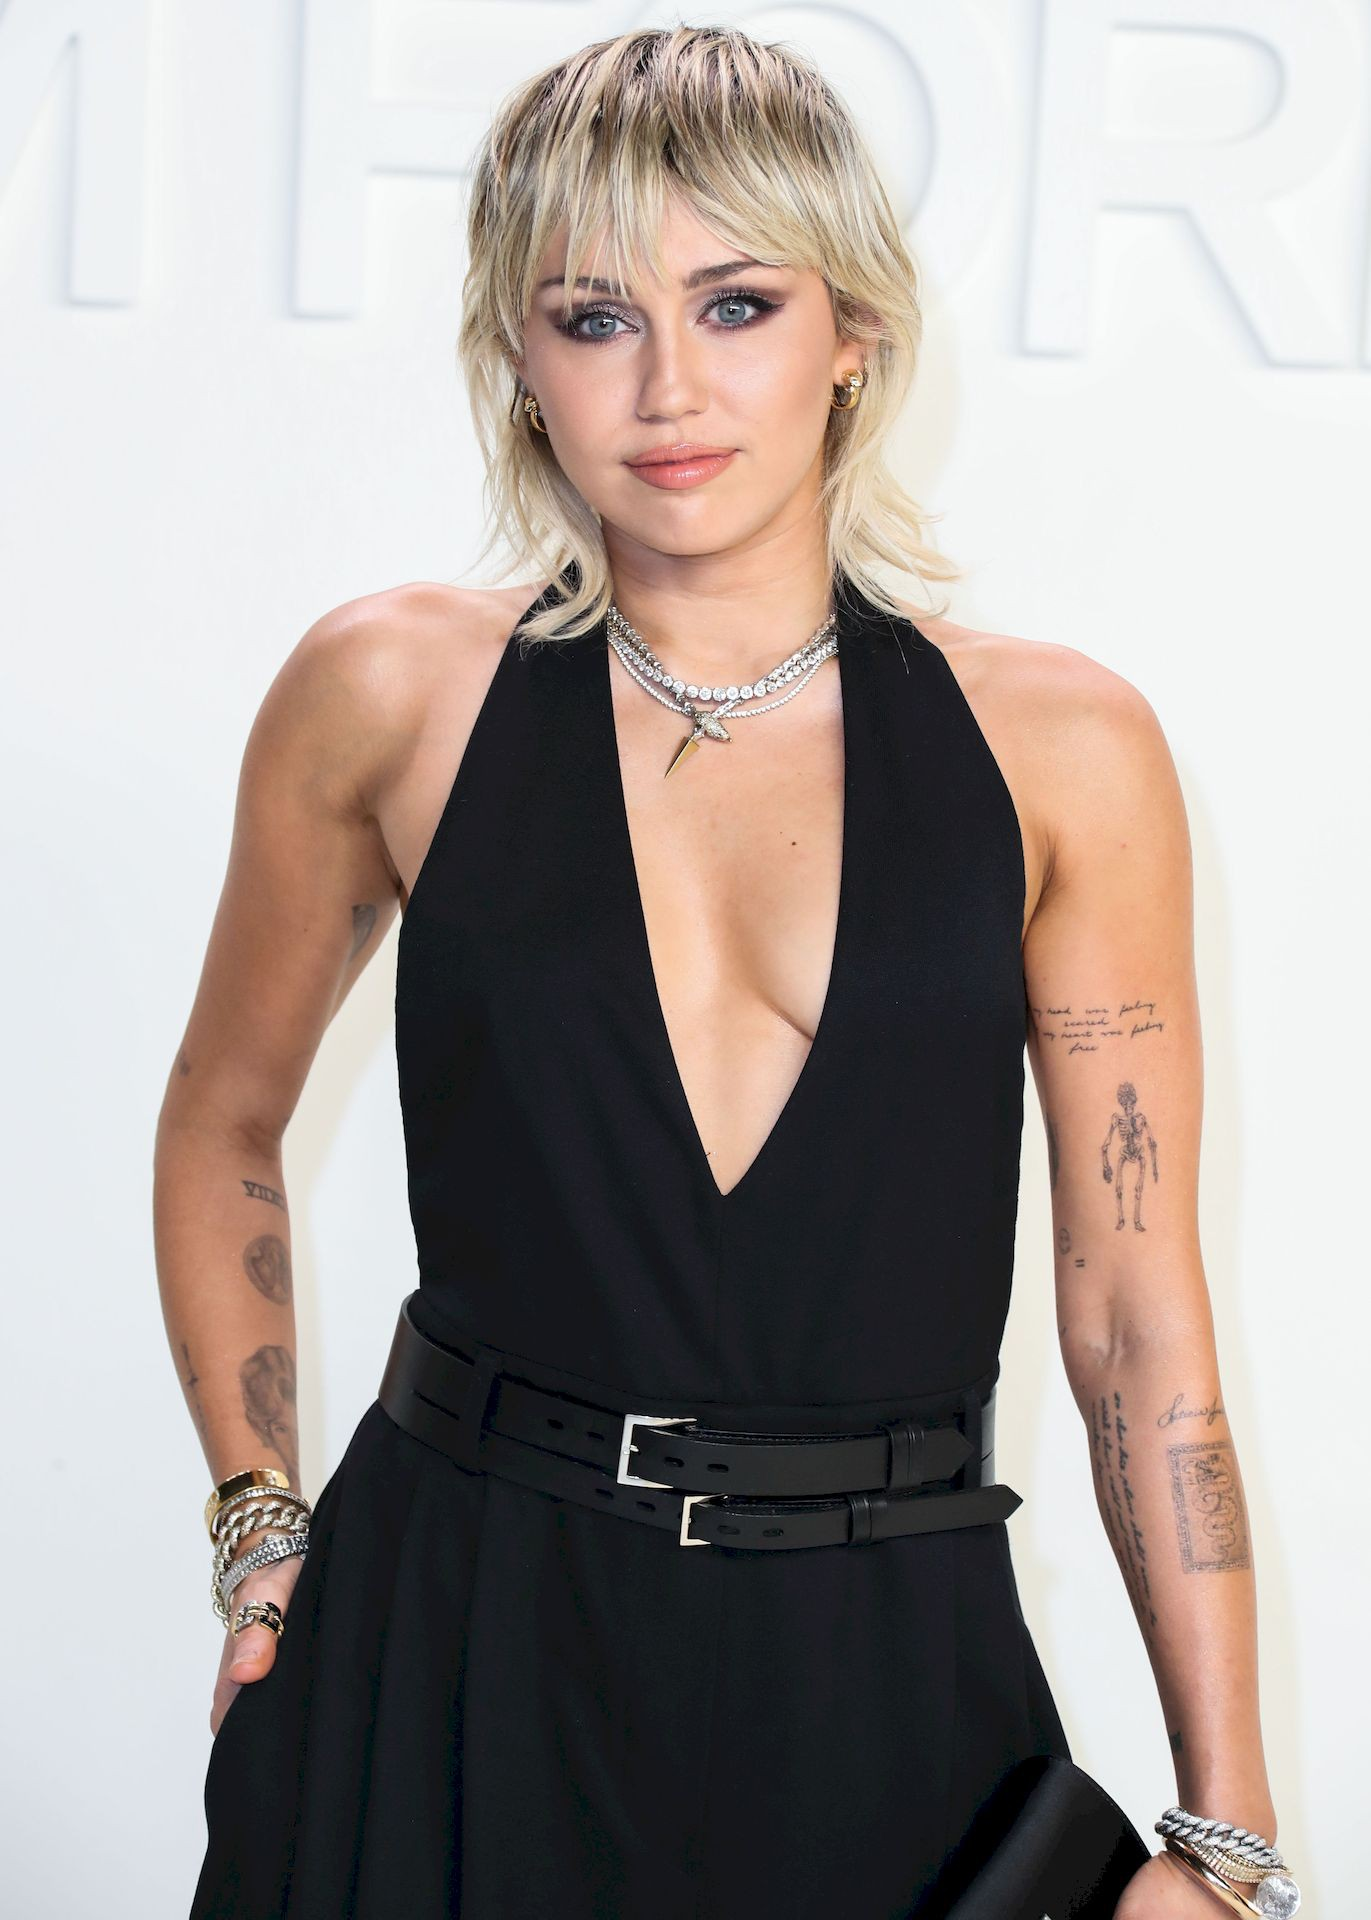 Miley Cyrus Sexy Braless Breasts In Revealing Black Dress